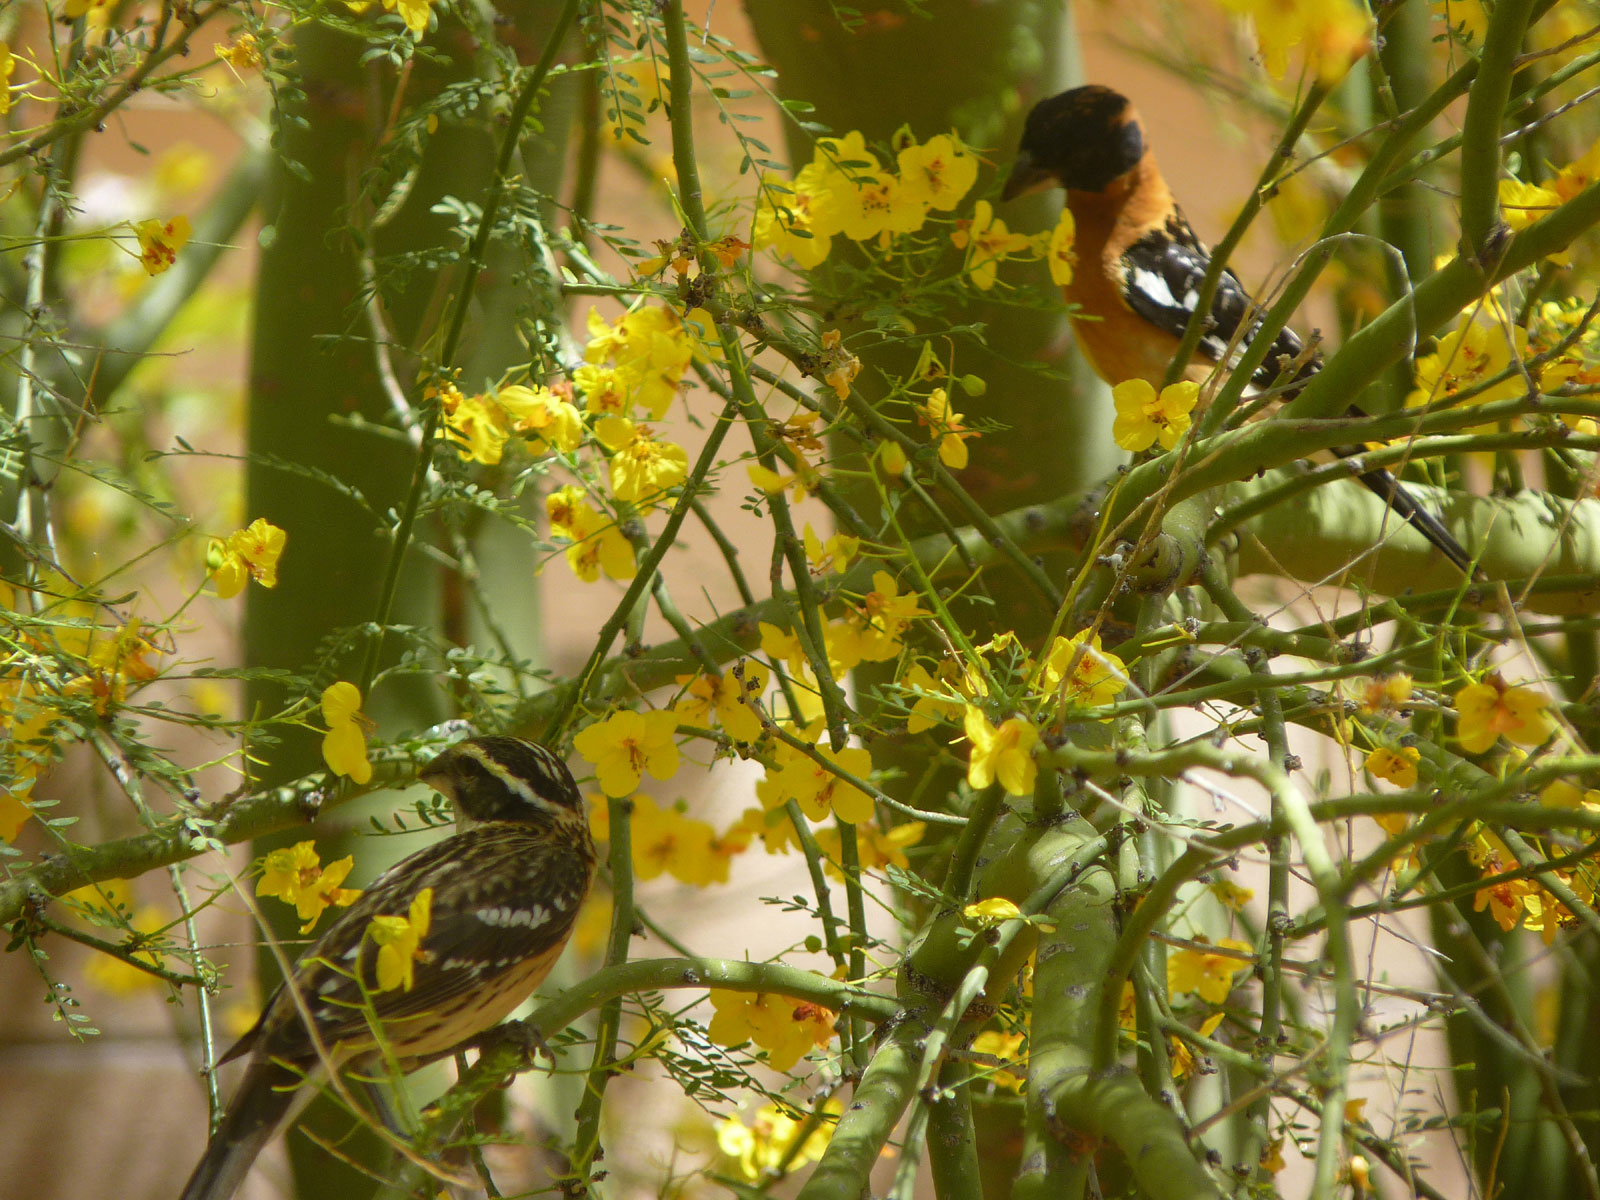 A visiting pair of Black Headed Grosbeaks